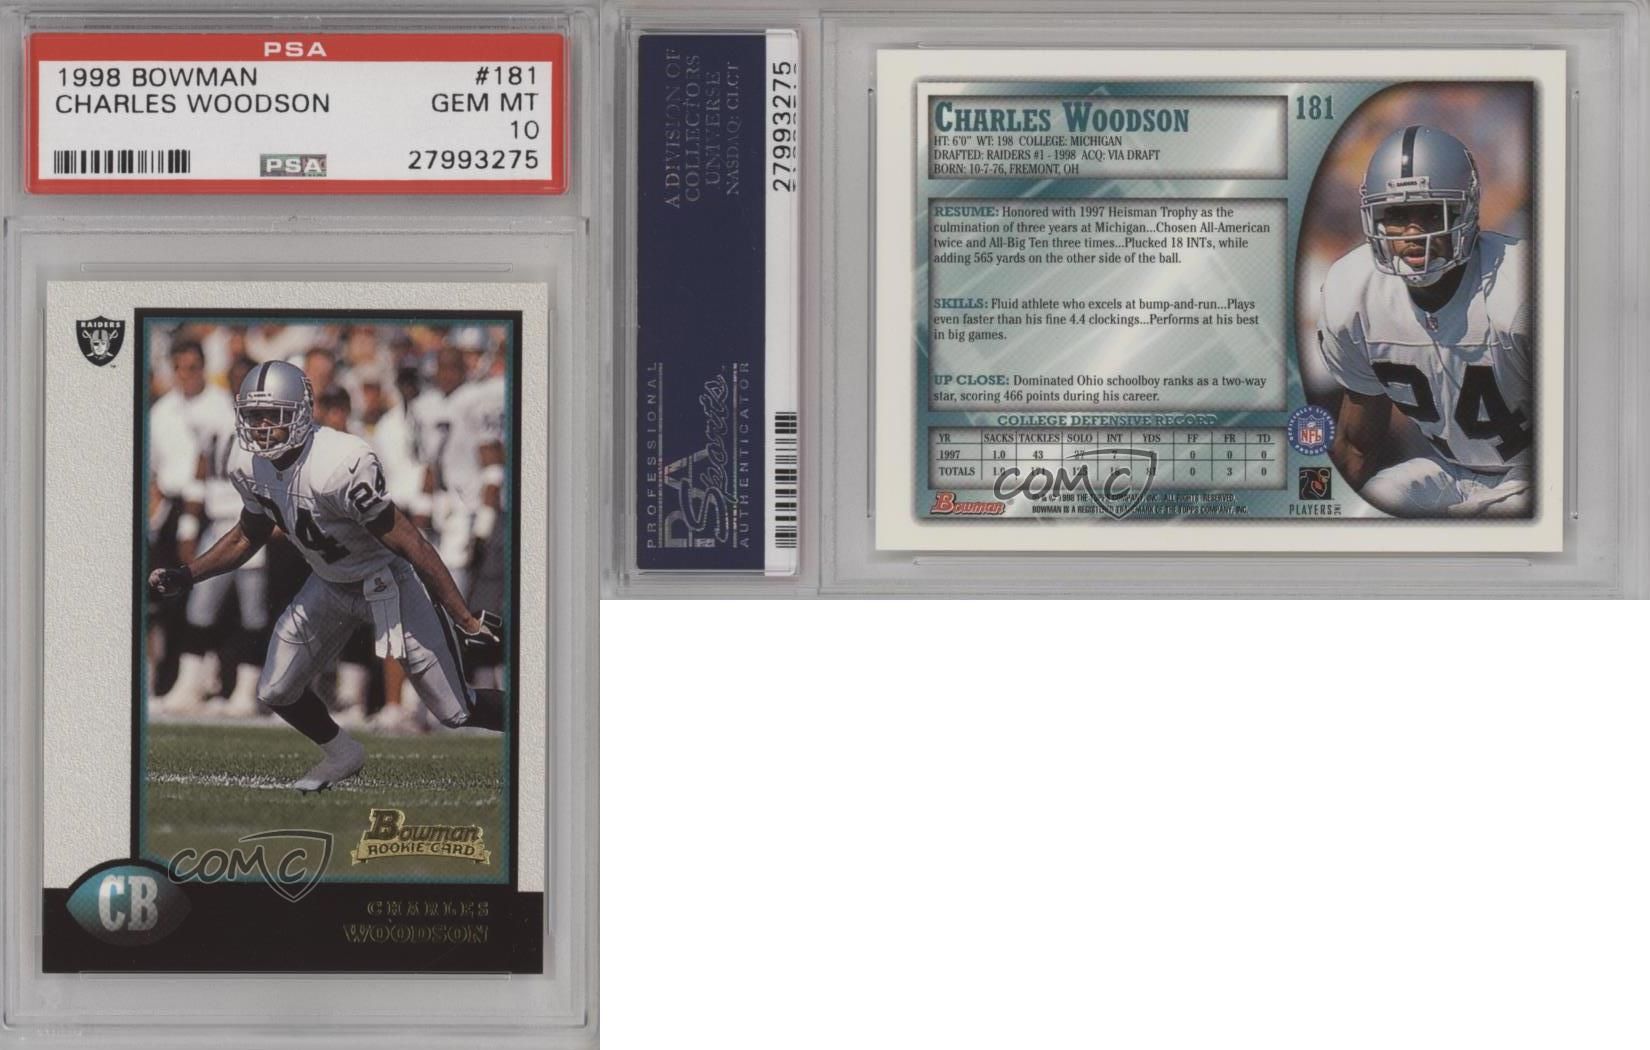 1998-Bowman-181-Charles-Woodson-PSA-10-GEM-MT-Oakland-Raiders-RC-Football-Card